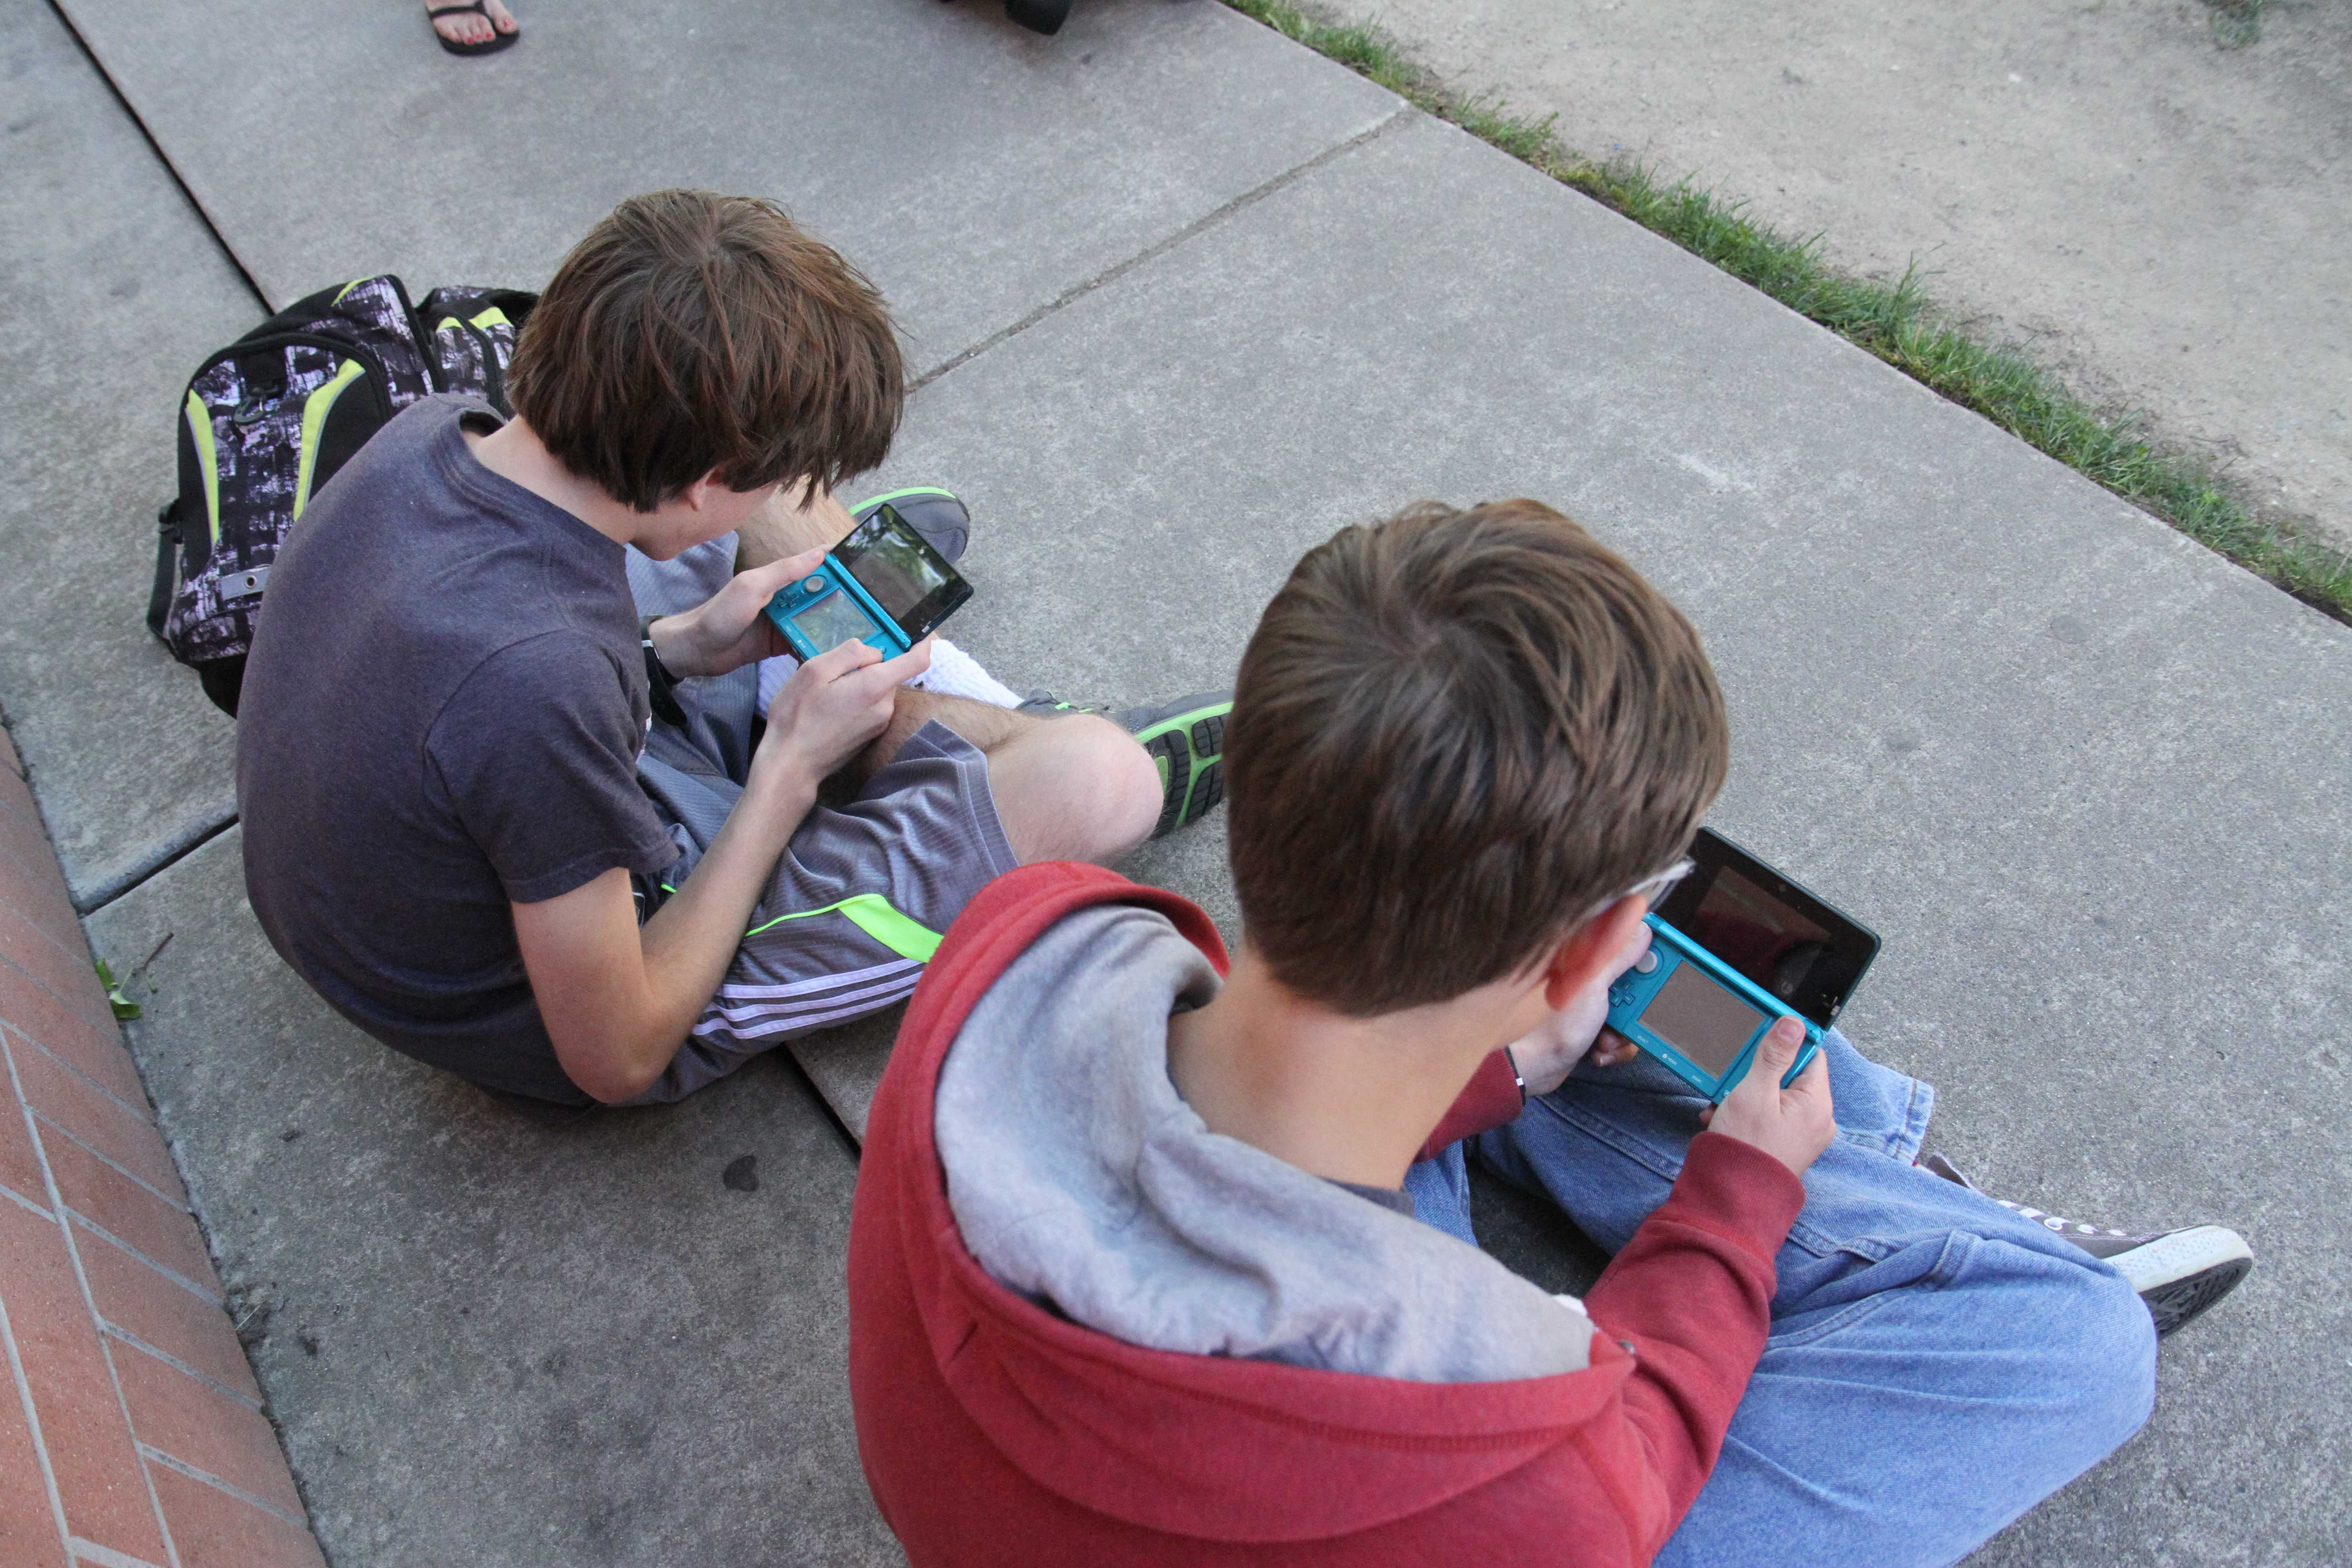 "To play as the new Pokemon character, freshman Jacob Kwiatkowski and Joe Duckhorn stay on campus after school together. They're playing Super Smash Bros for Nintendo 3DS. ""Mewtow just came out, so we're playing as him. I love Smash Bros, and have been in the Smash Club since the beginning of the year,"" Duckhorn said. Photo by Ava Lindley"